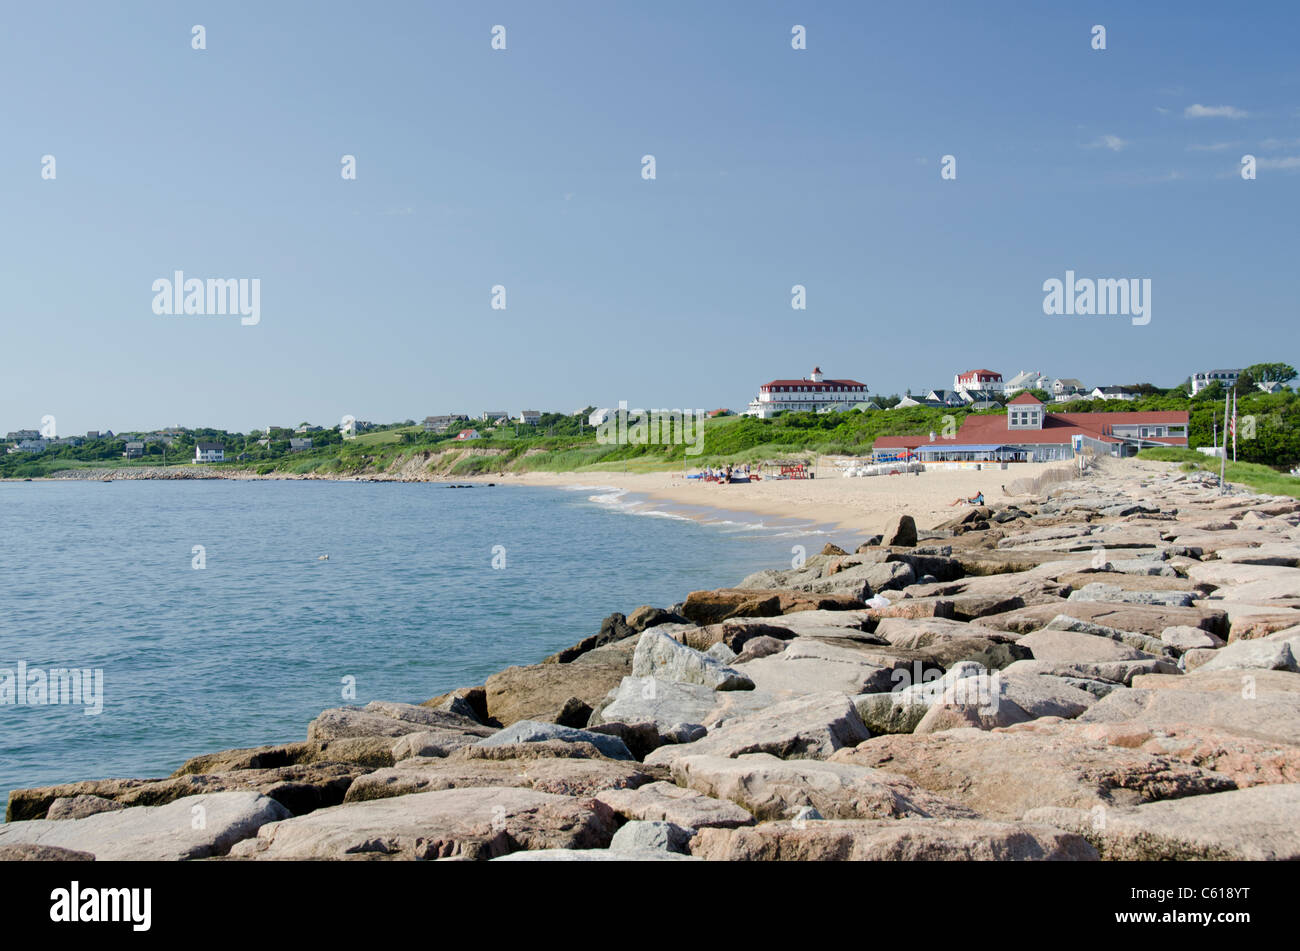 Rhode Island, Block Island (aka New Shoreham). Block Island beach. - Stock Image